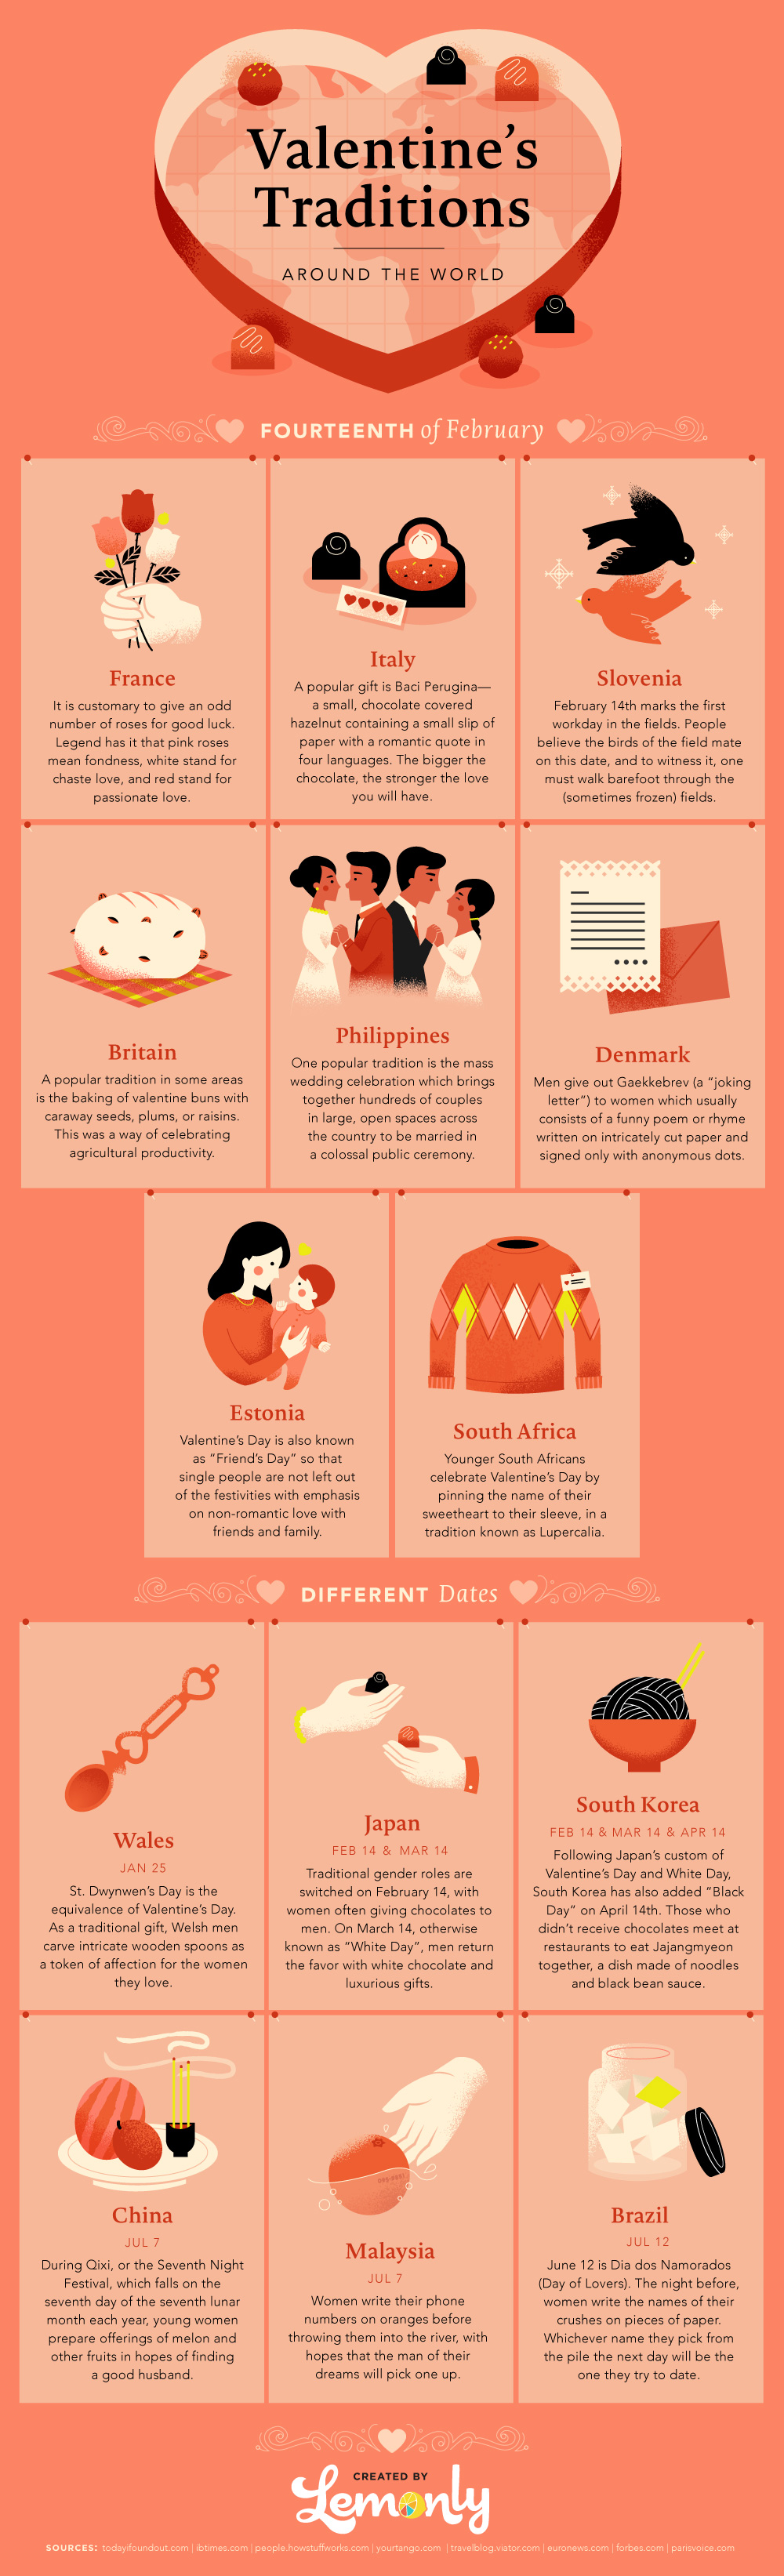 Valentine's Traditions from Around the World Infographic